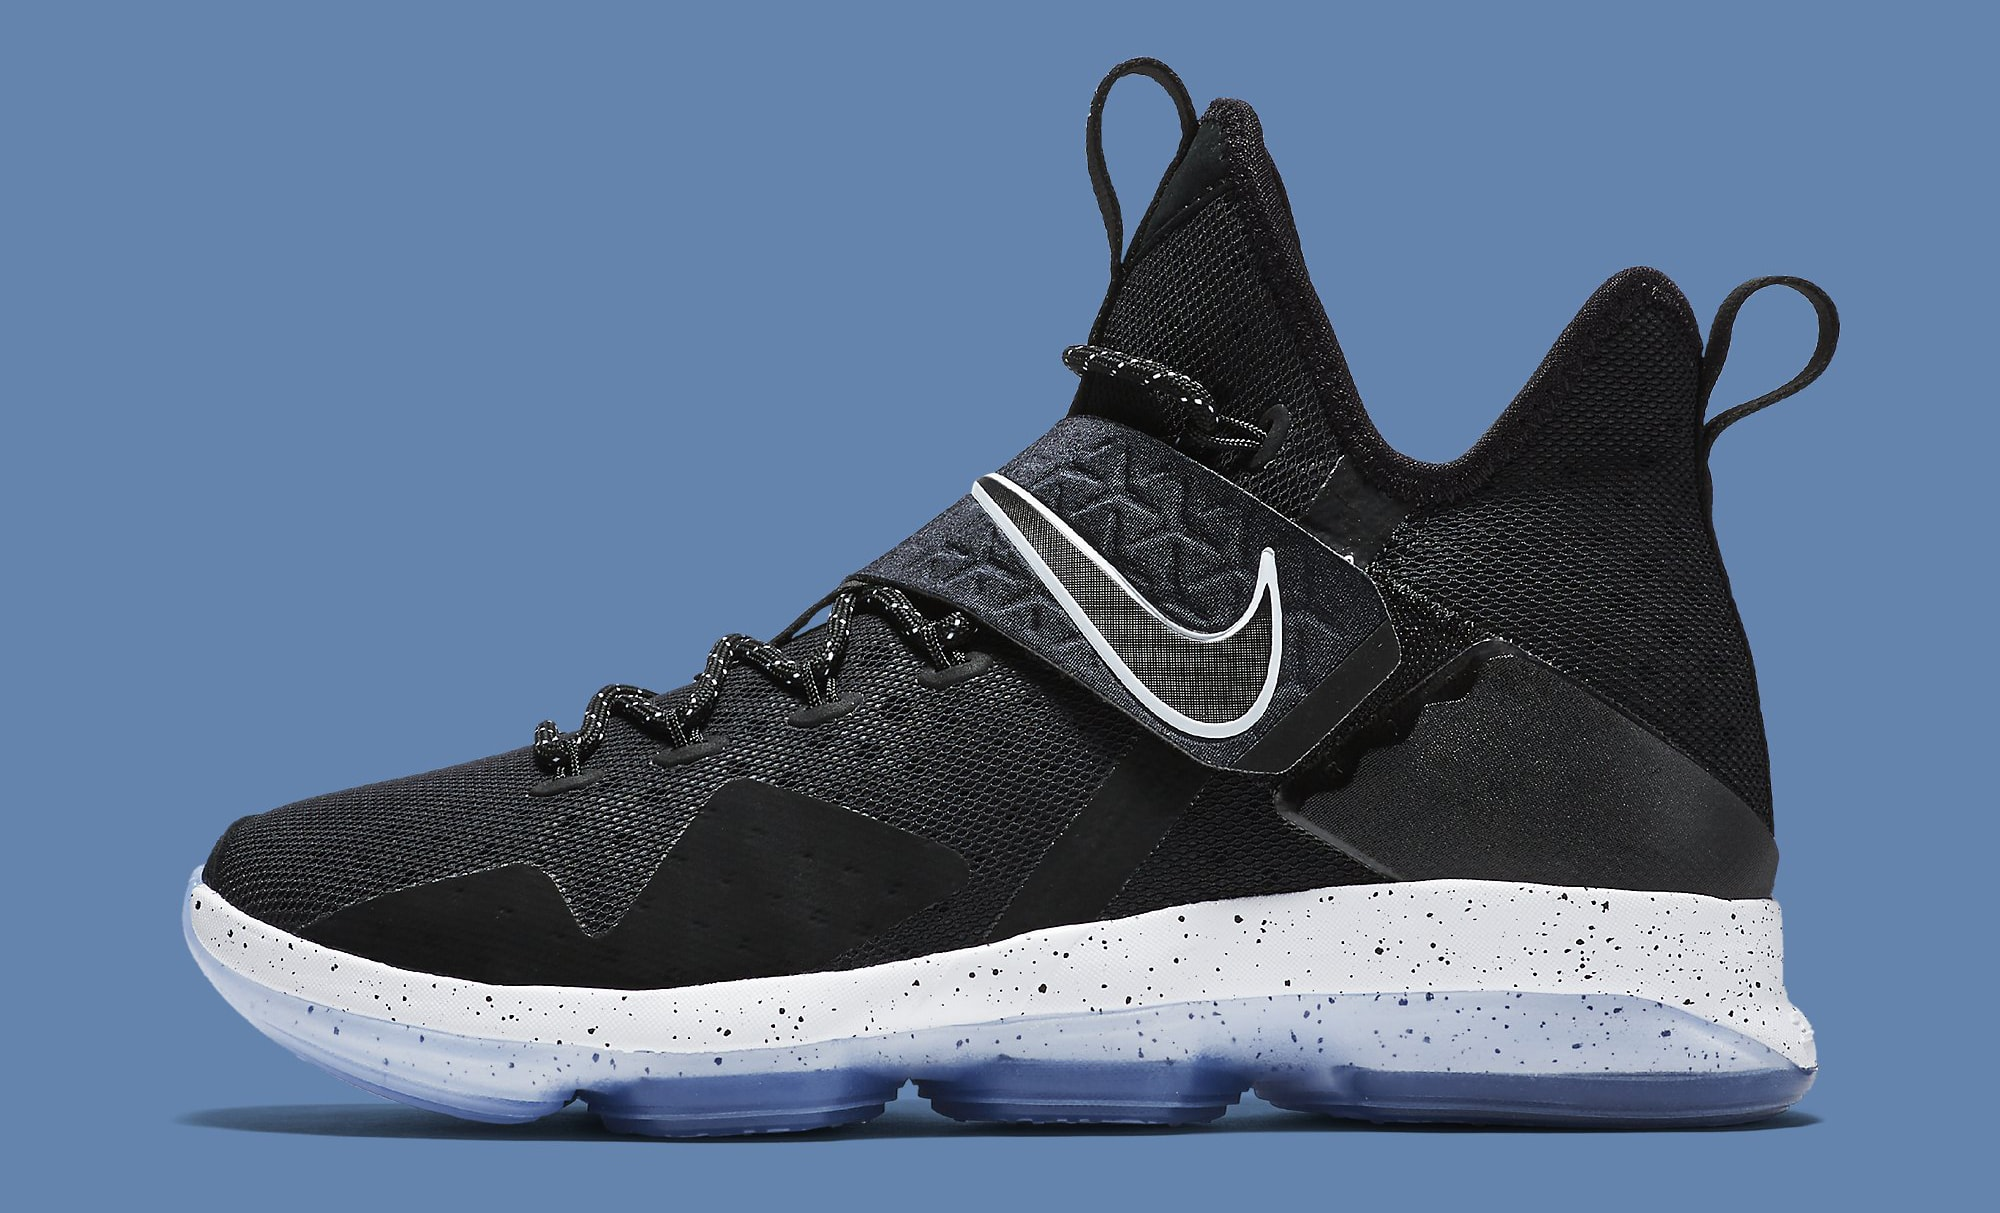 Black Ice Nike LeBron 14 921084-002 Profile